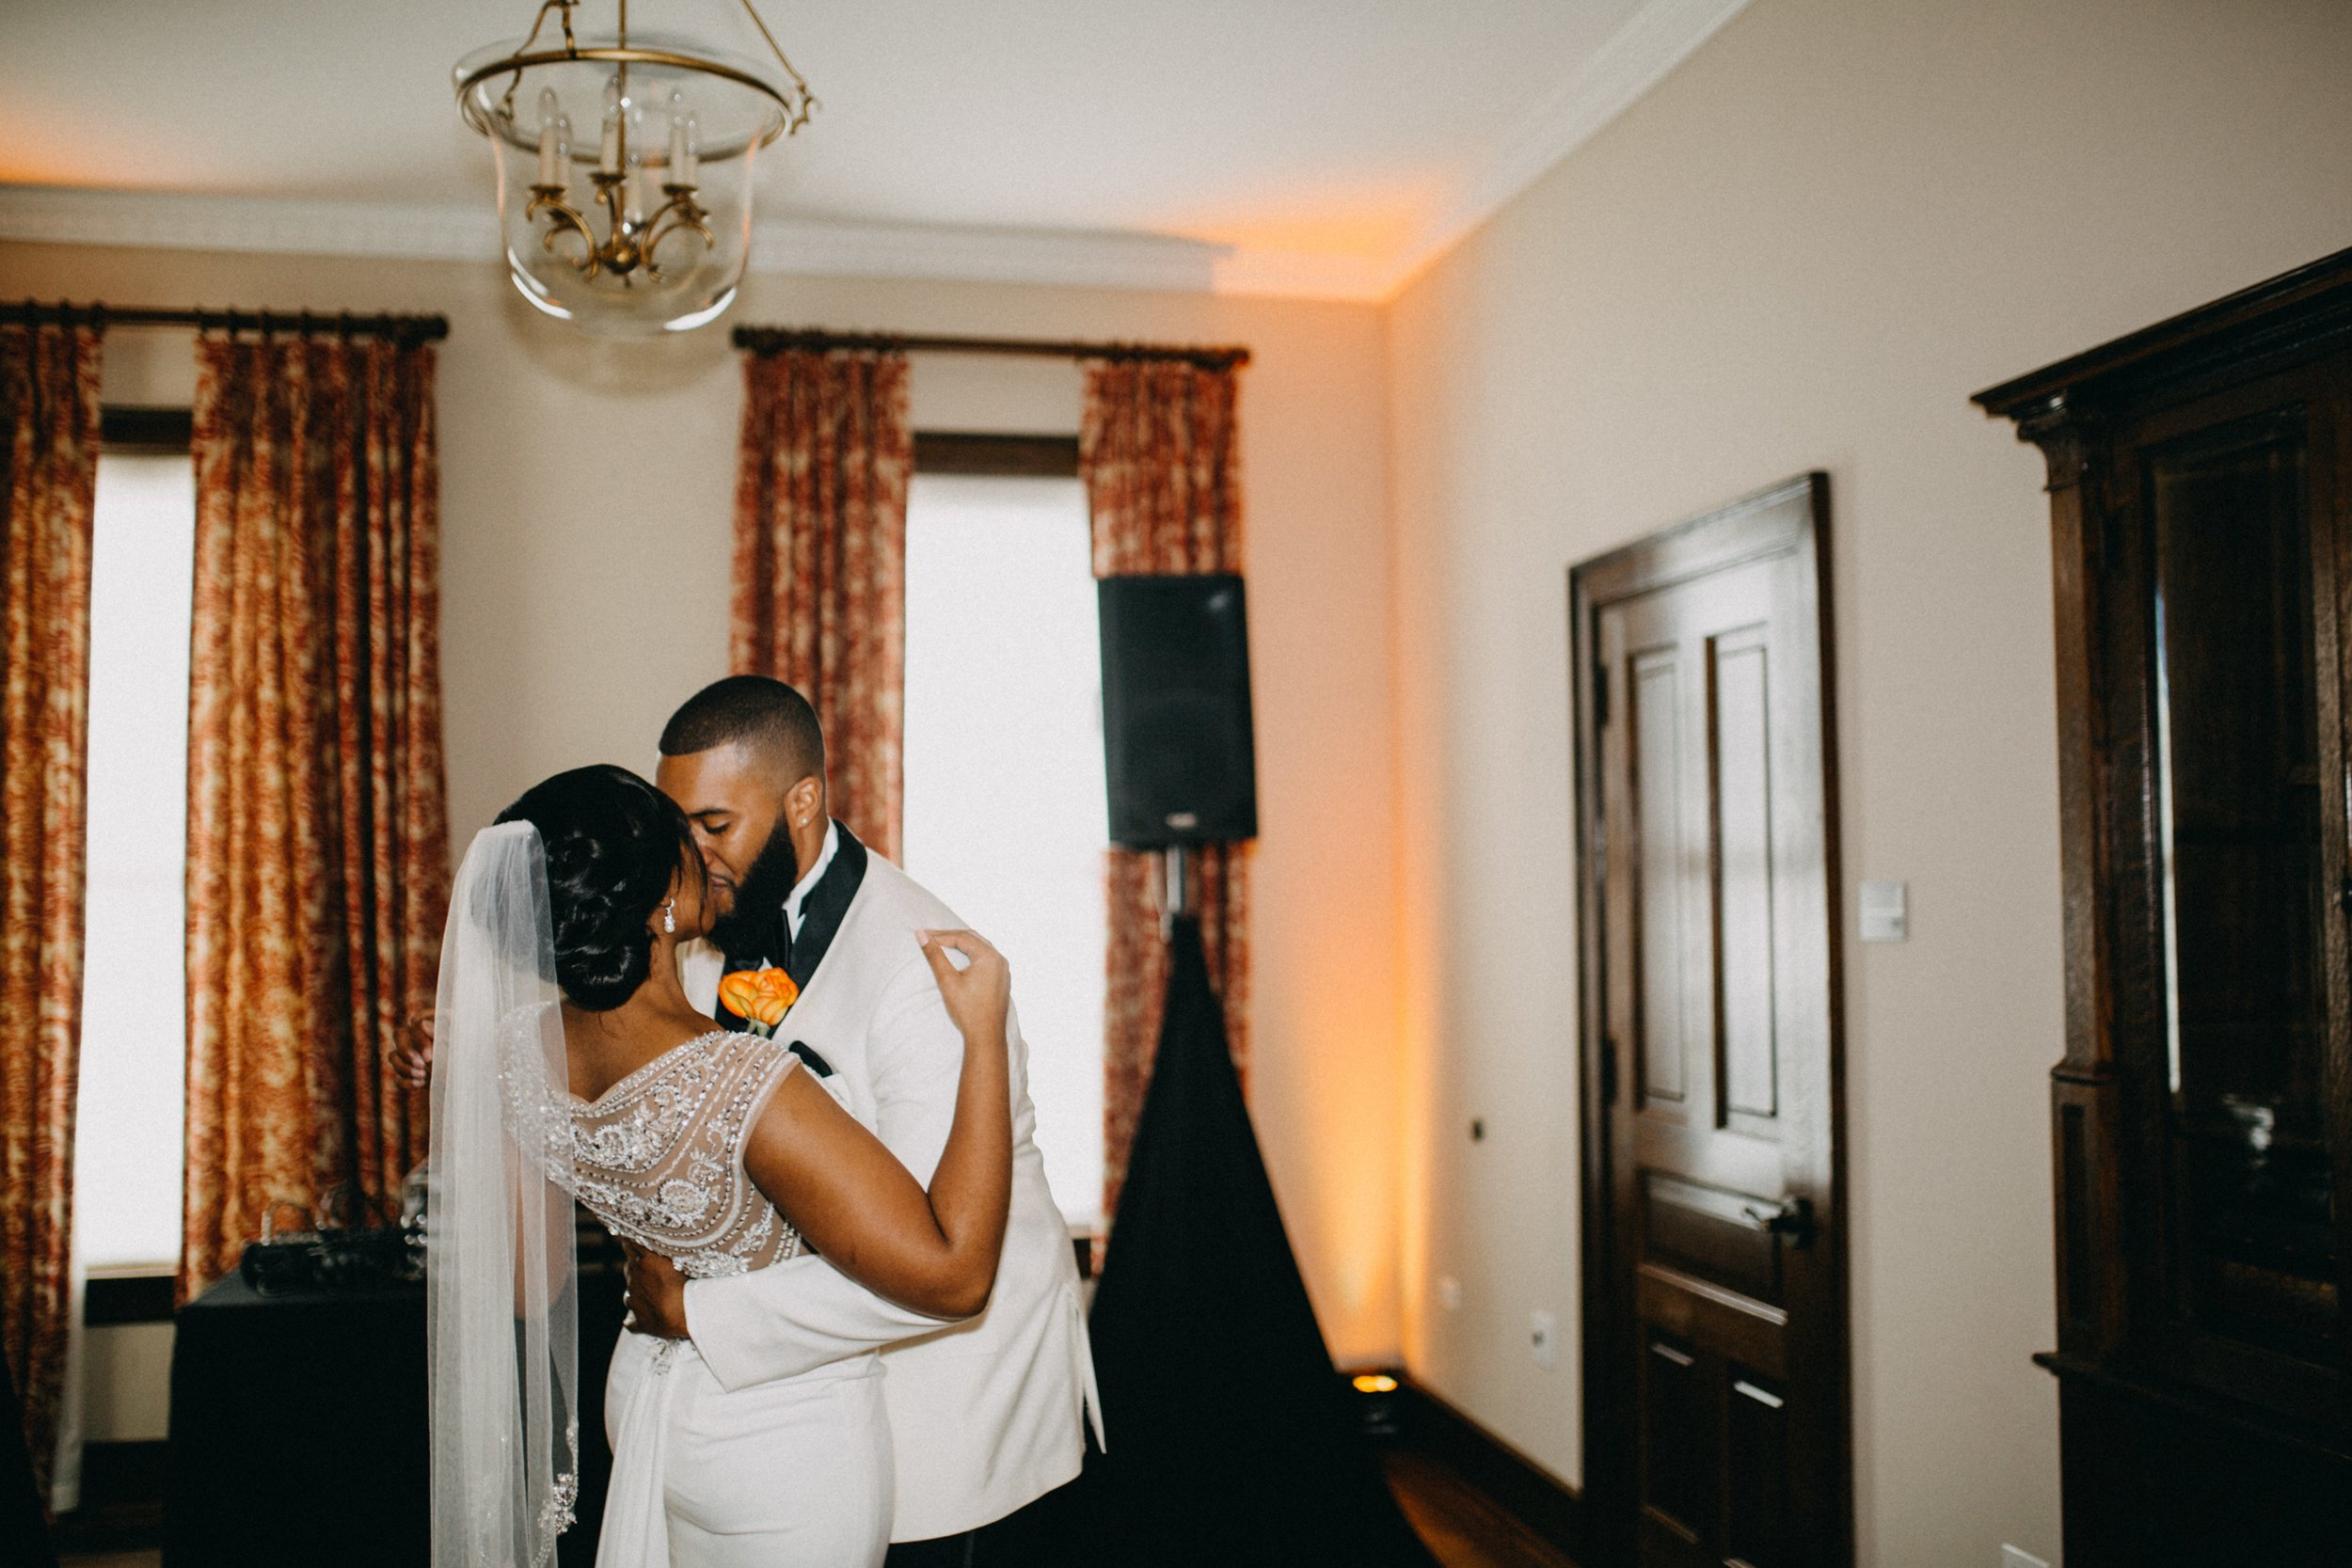 Who said that the bride and groom can't have an intimate first dance alone? How romantic!